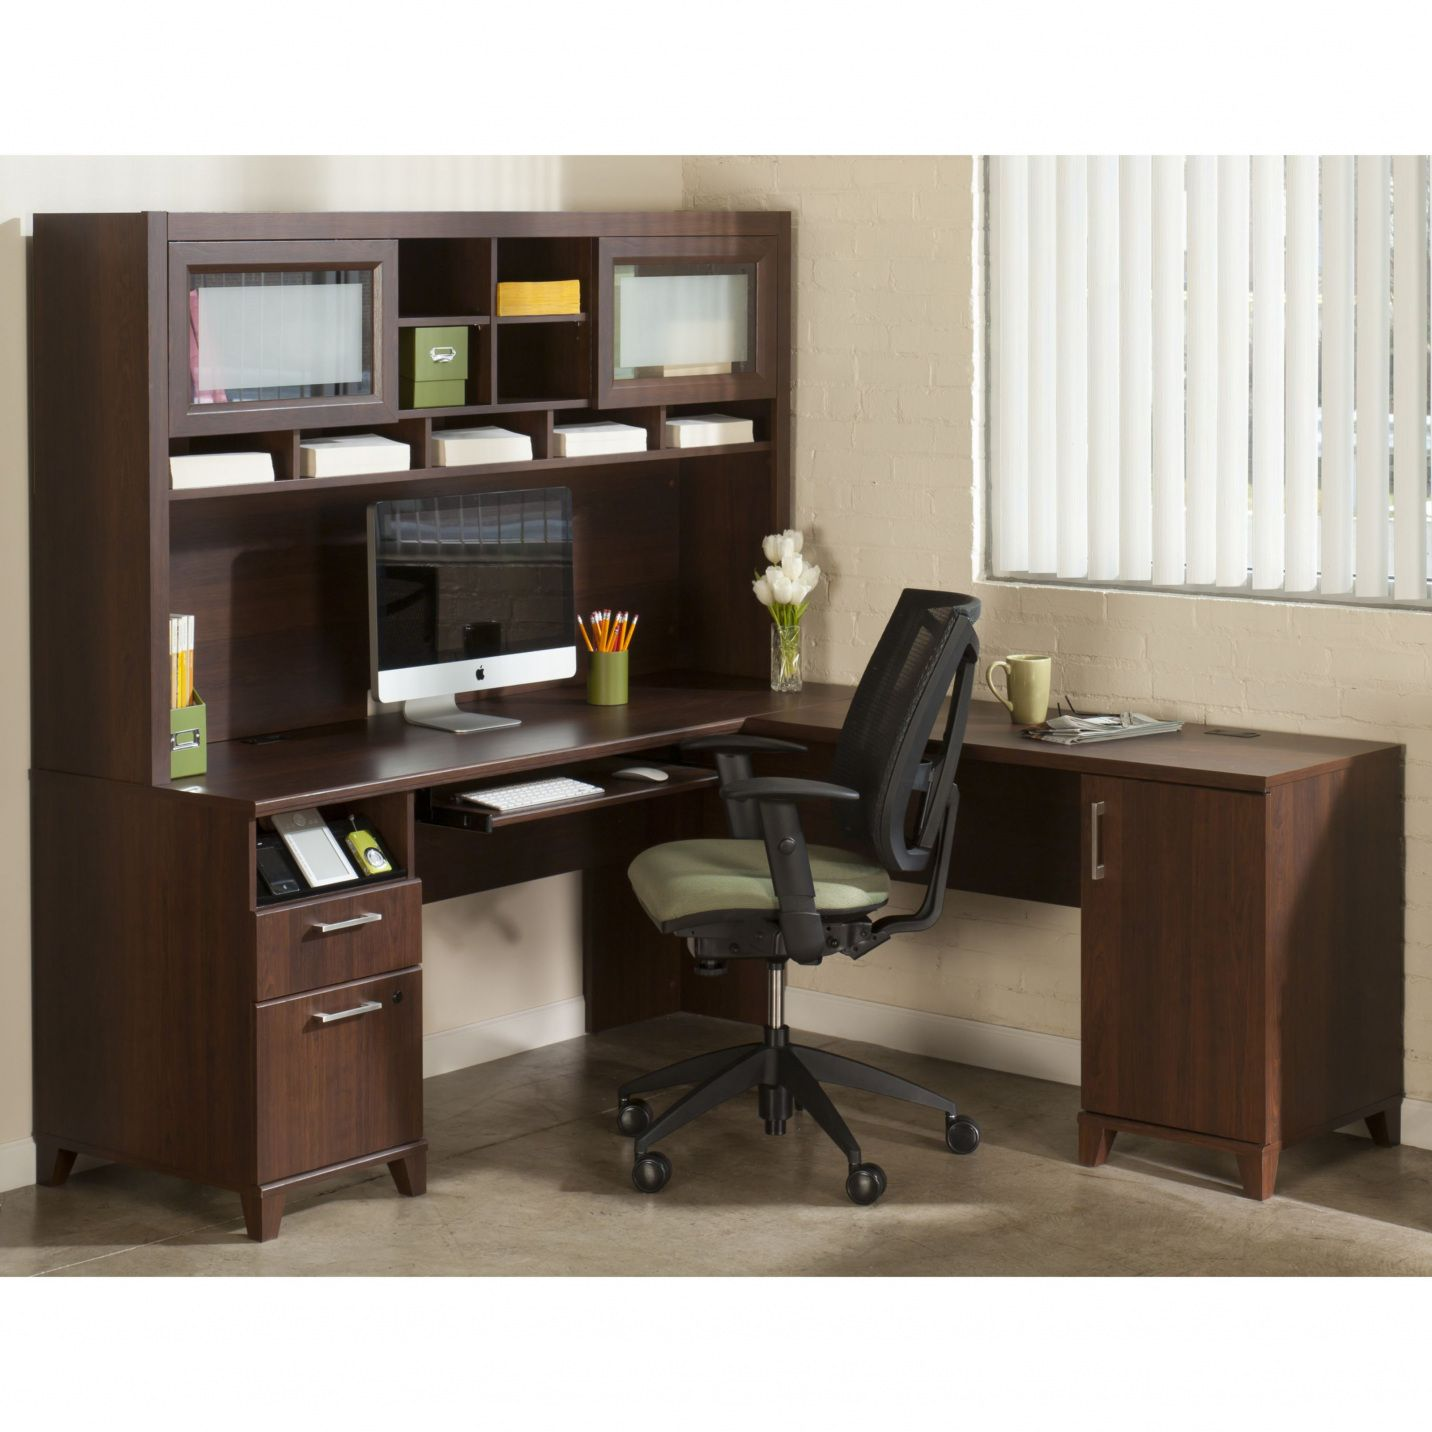 fice Max Desk with Hutch Home fice Furniture Sets Check more